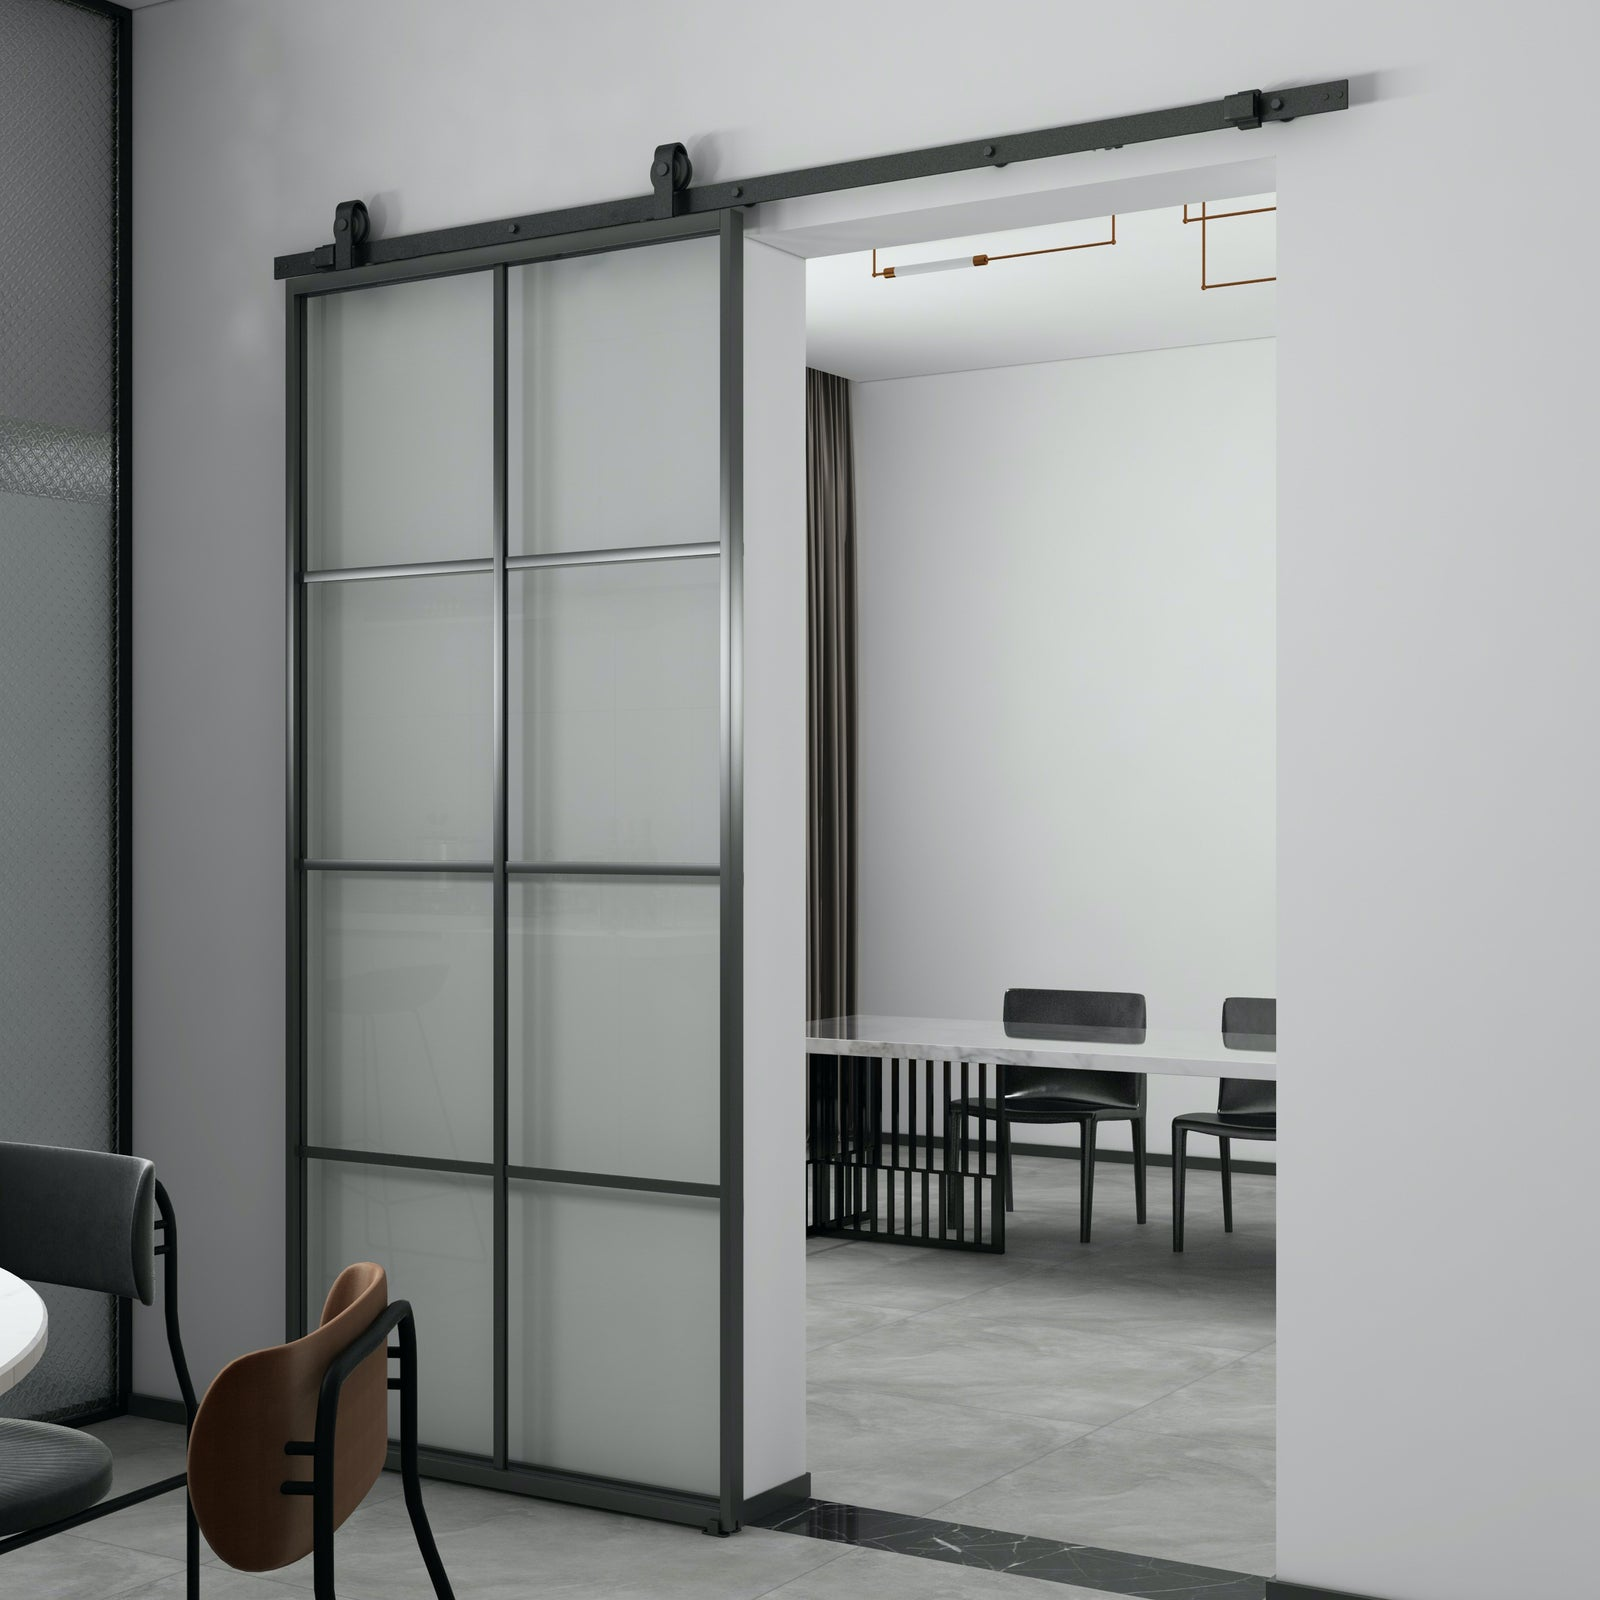 Aluminium Door | Aluminium Barn Door |  Aluminium Glass Barn Door Package AG01 | Aubarndoor